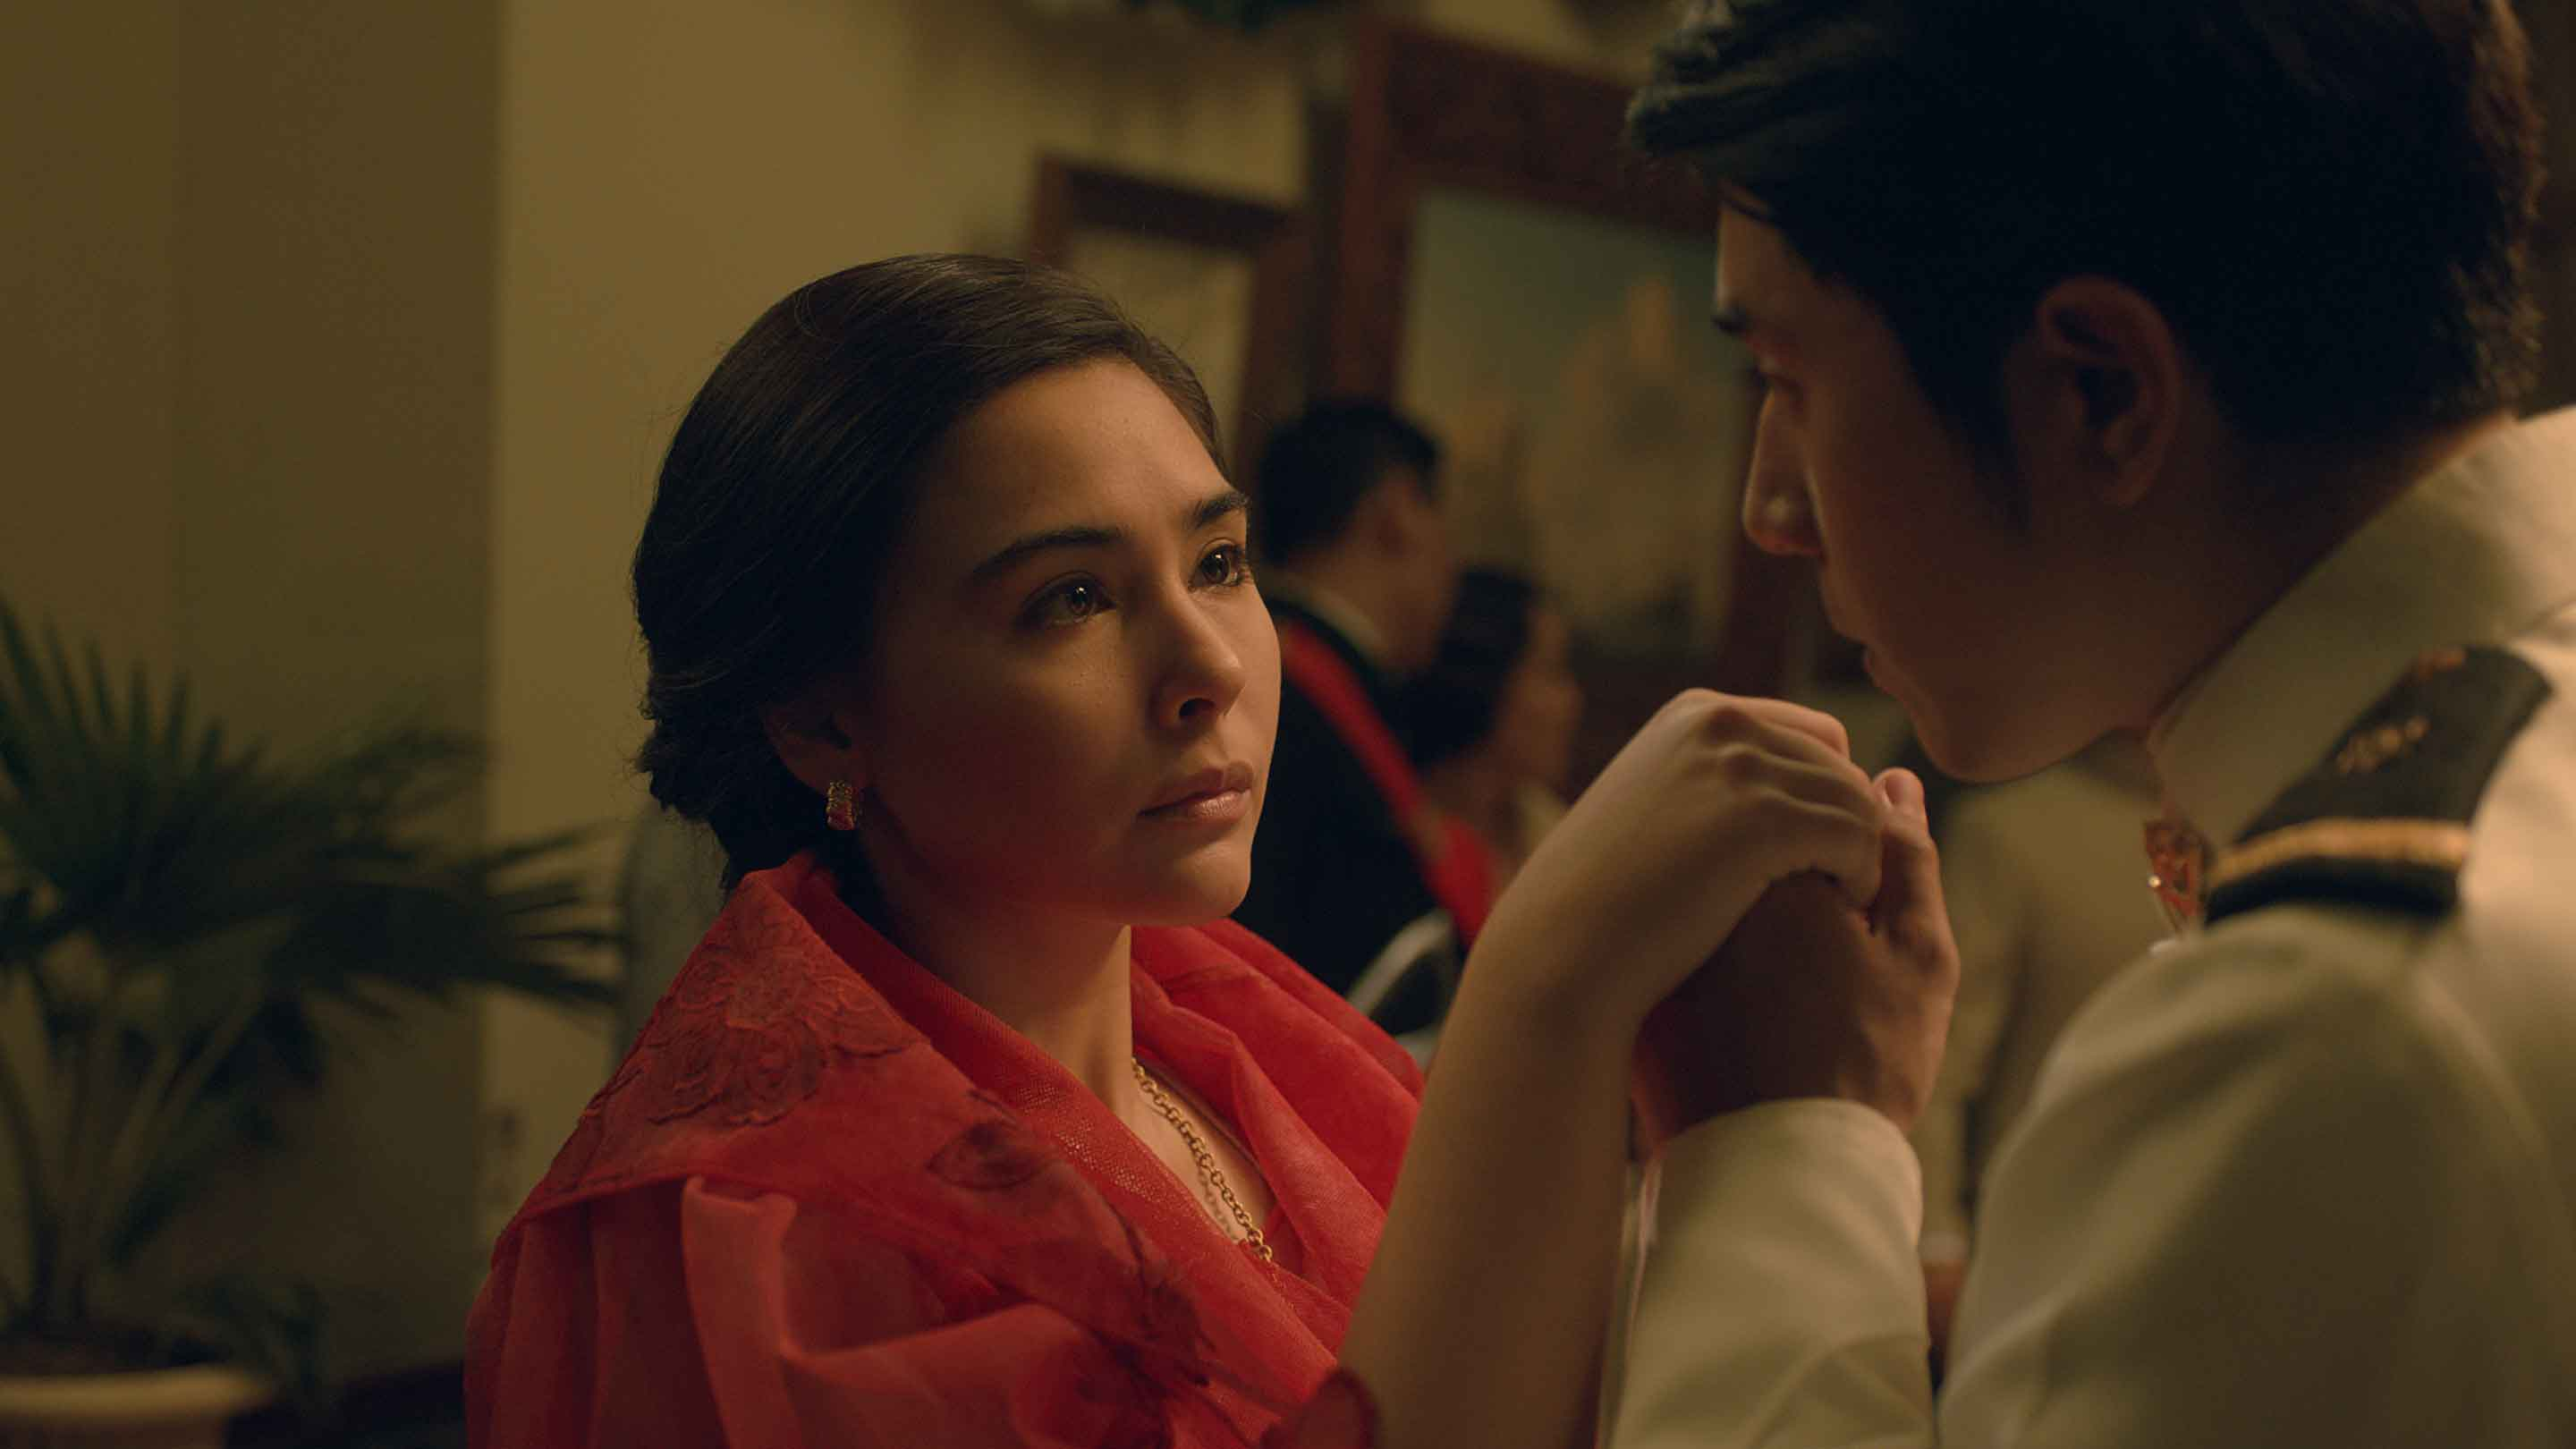 GOYO Portrays Del Pilar as a Young Man in Conflict - His ...